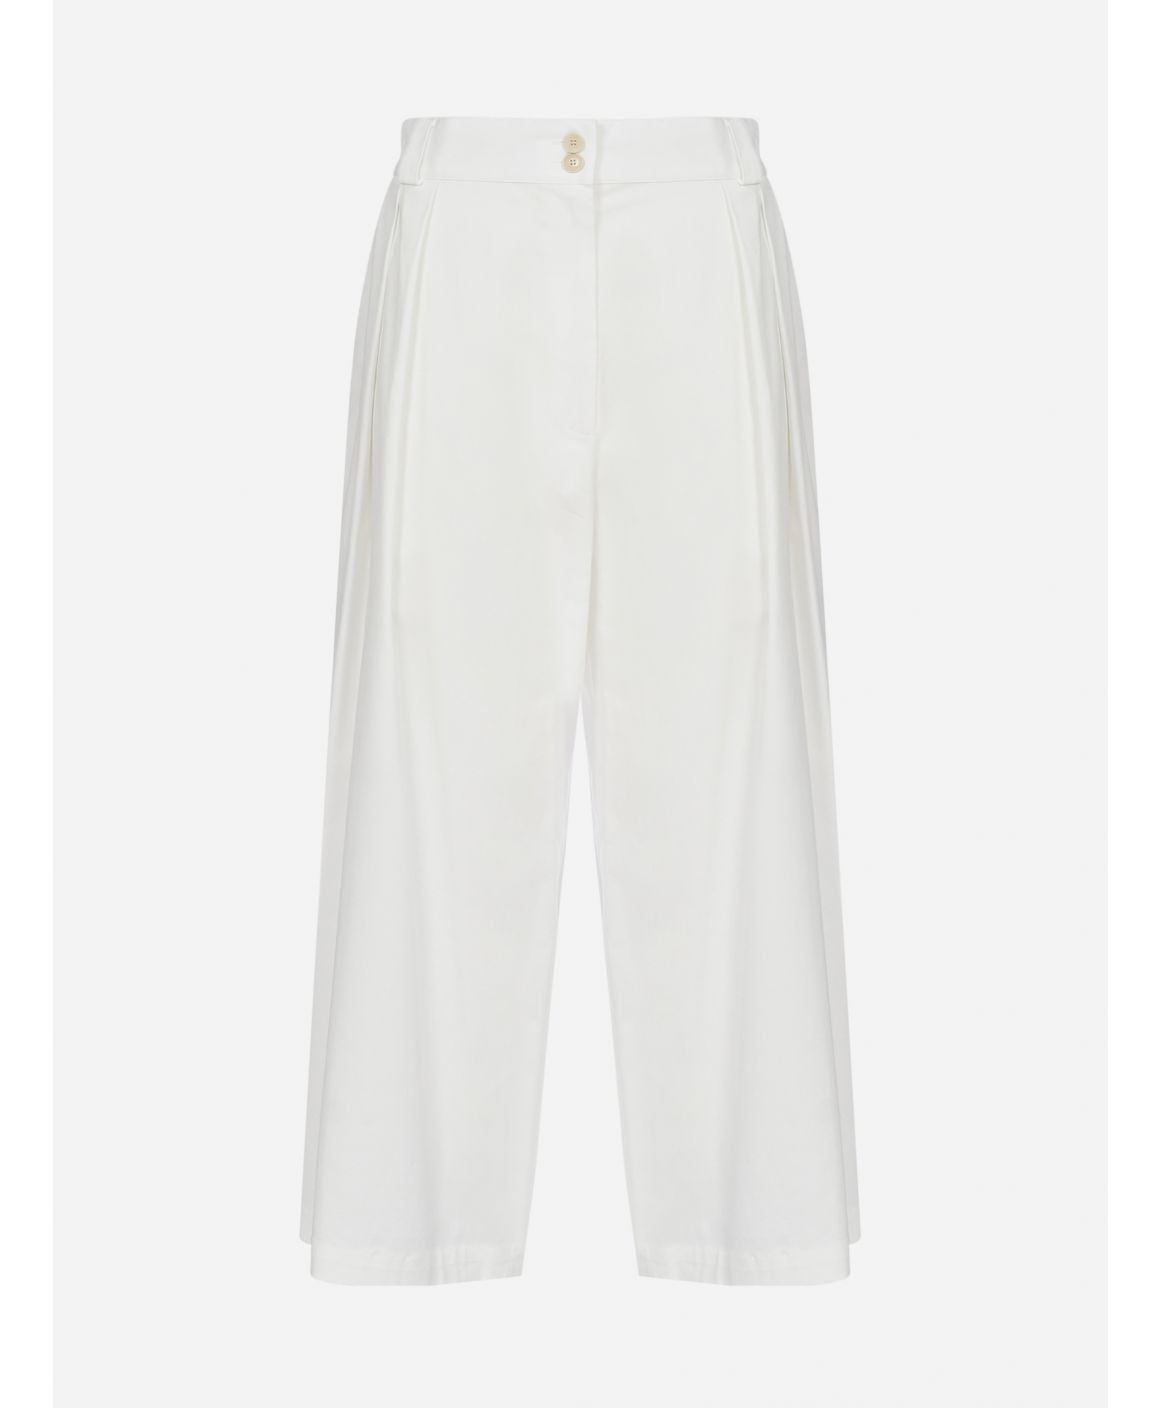 Corsica stretch cotton trousers